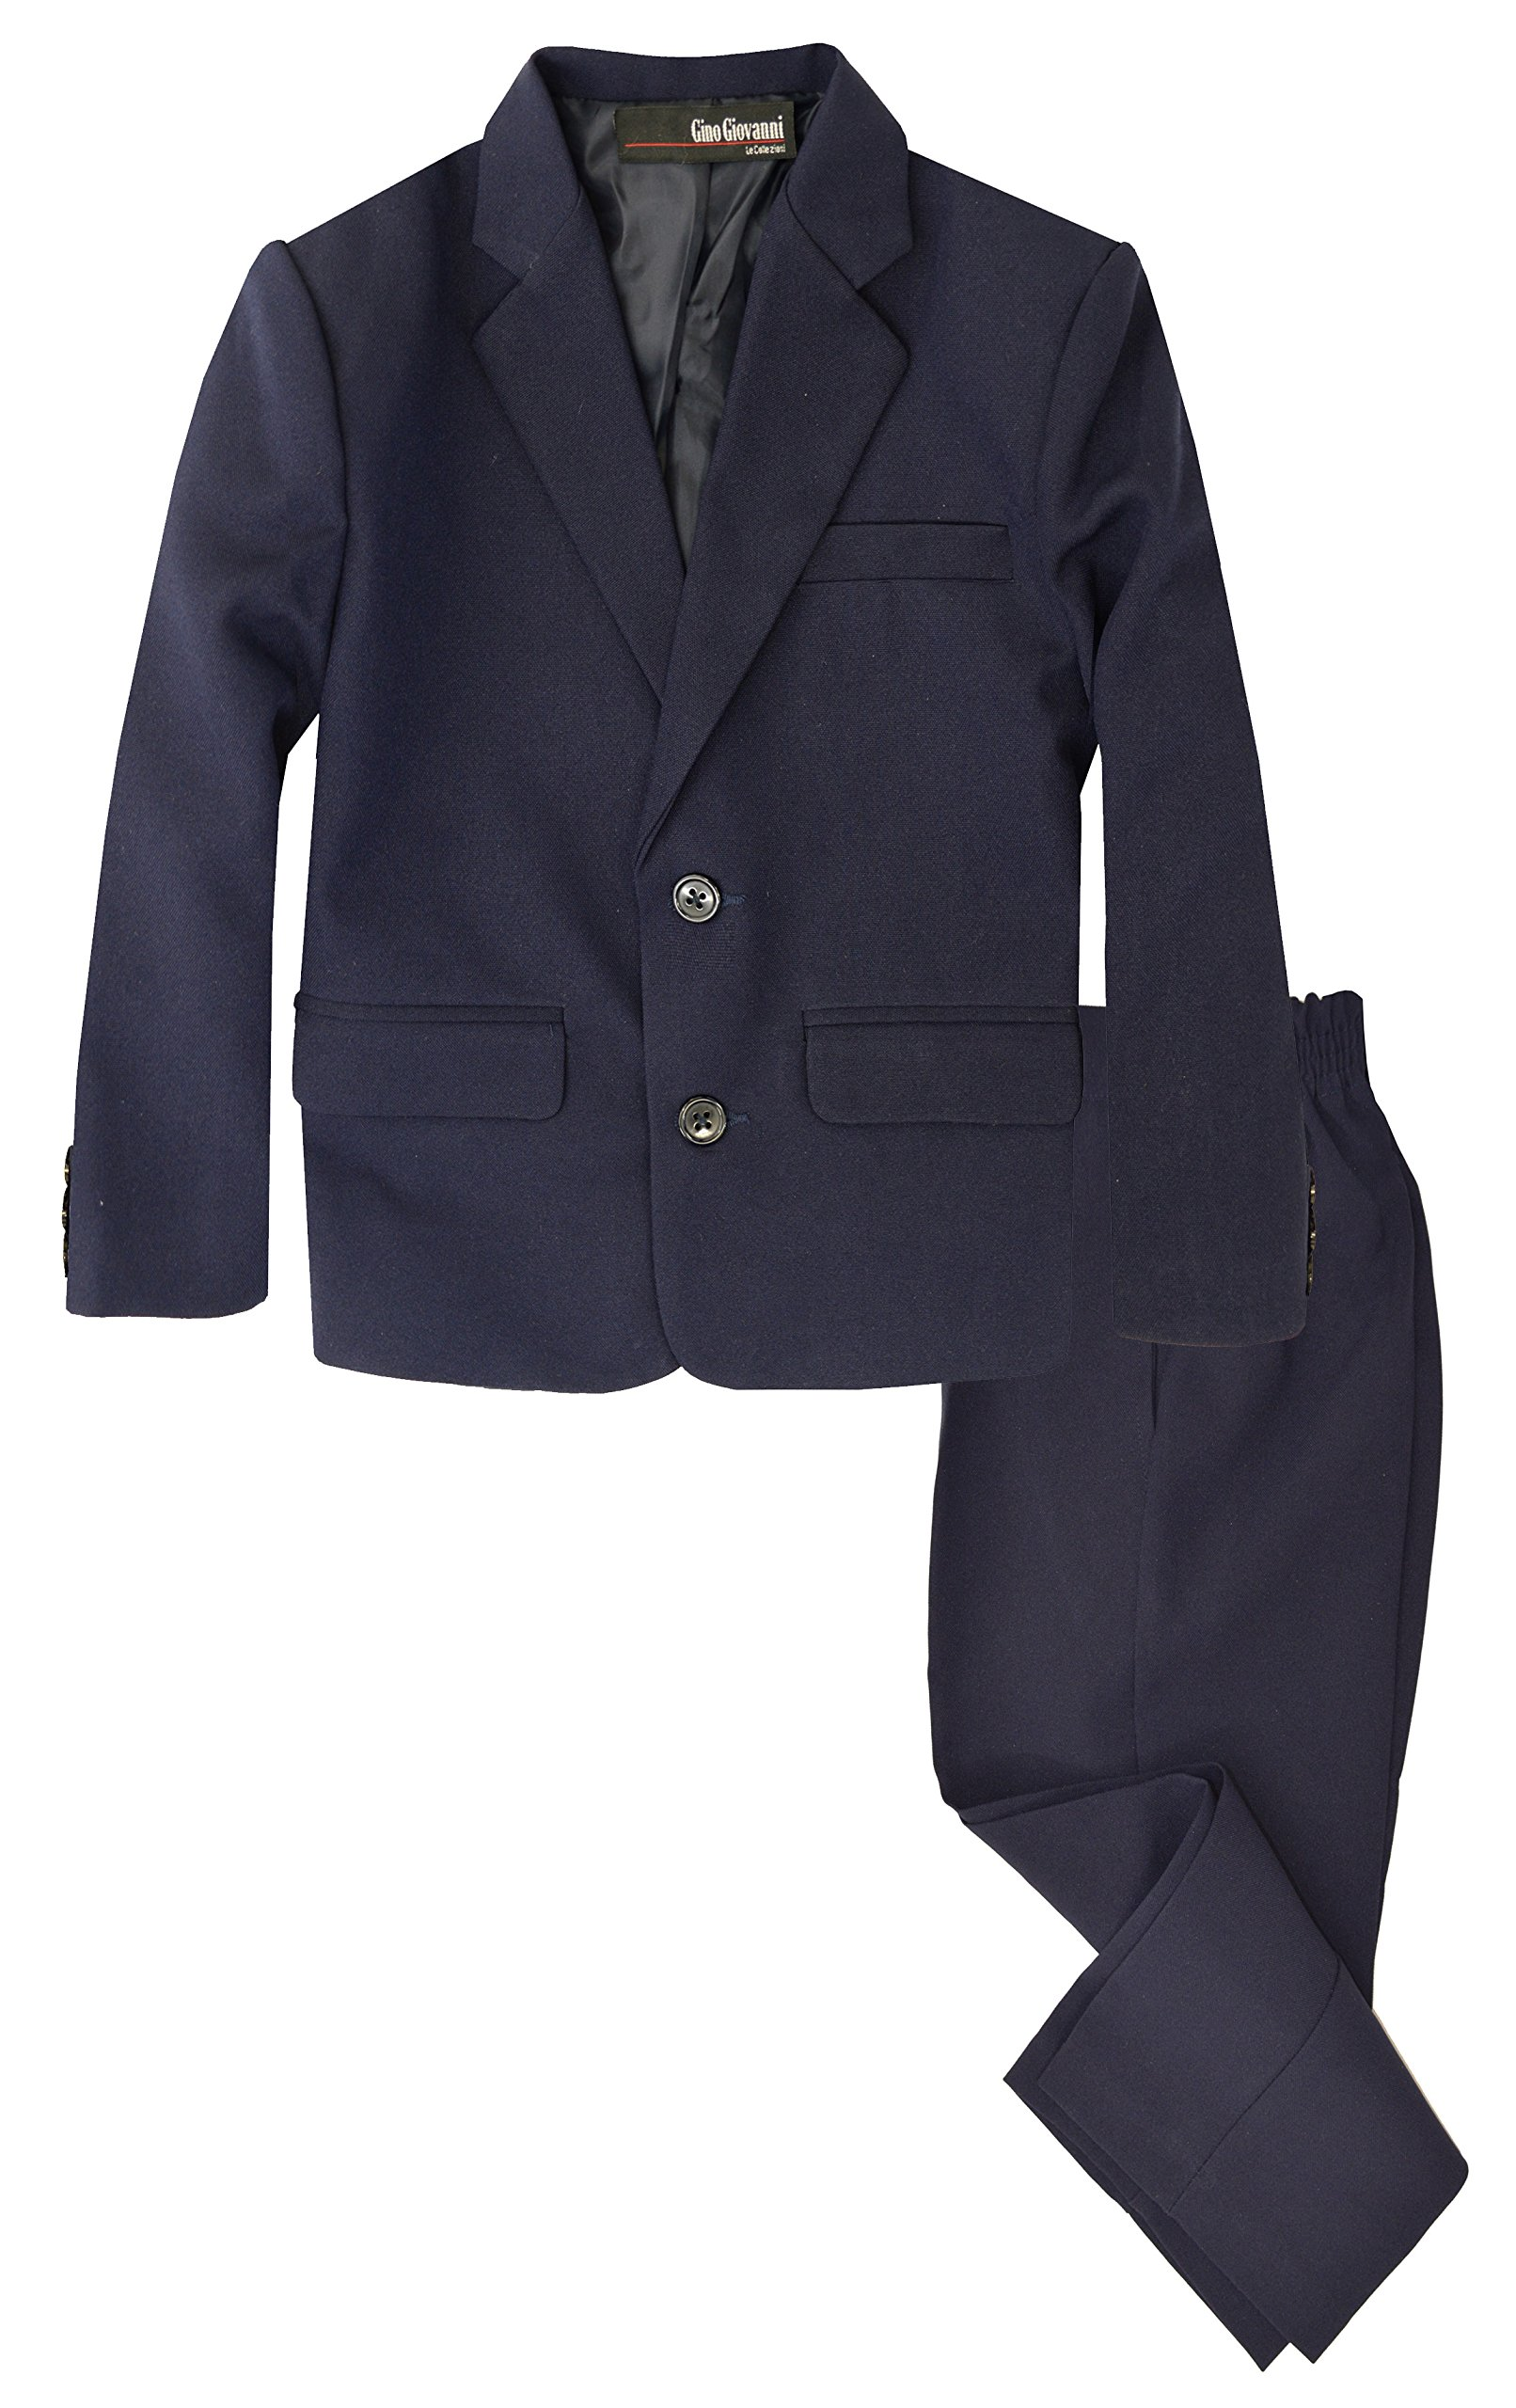 G218 Boys 2 Piece Suit Set Toddler to Teen (2/2T, Navy Blue)